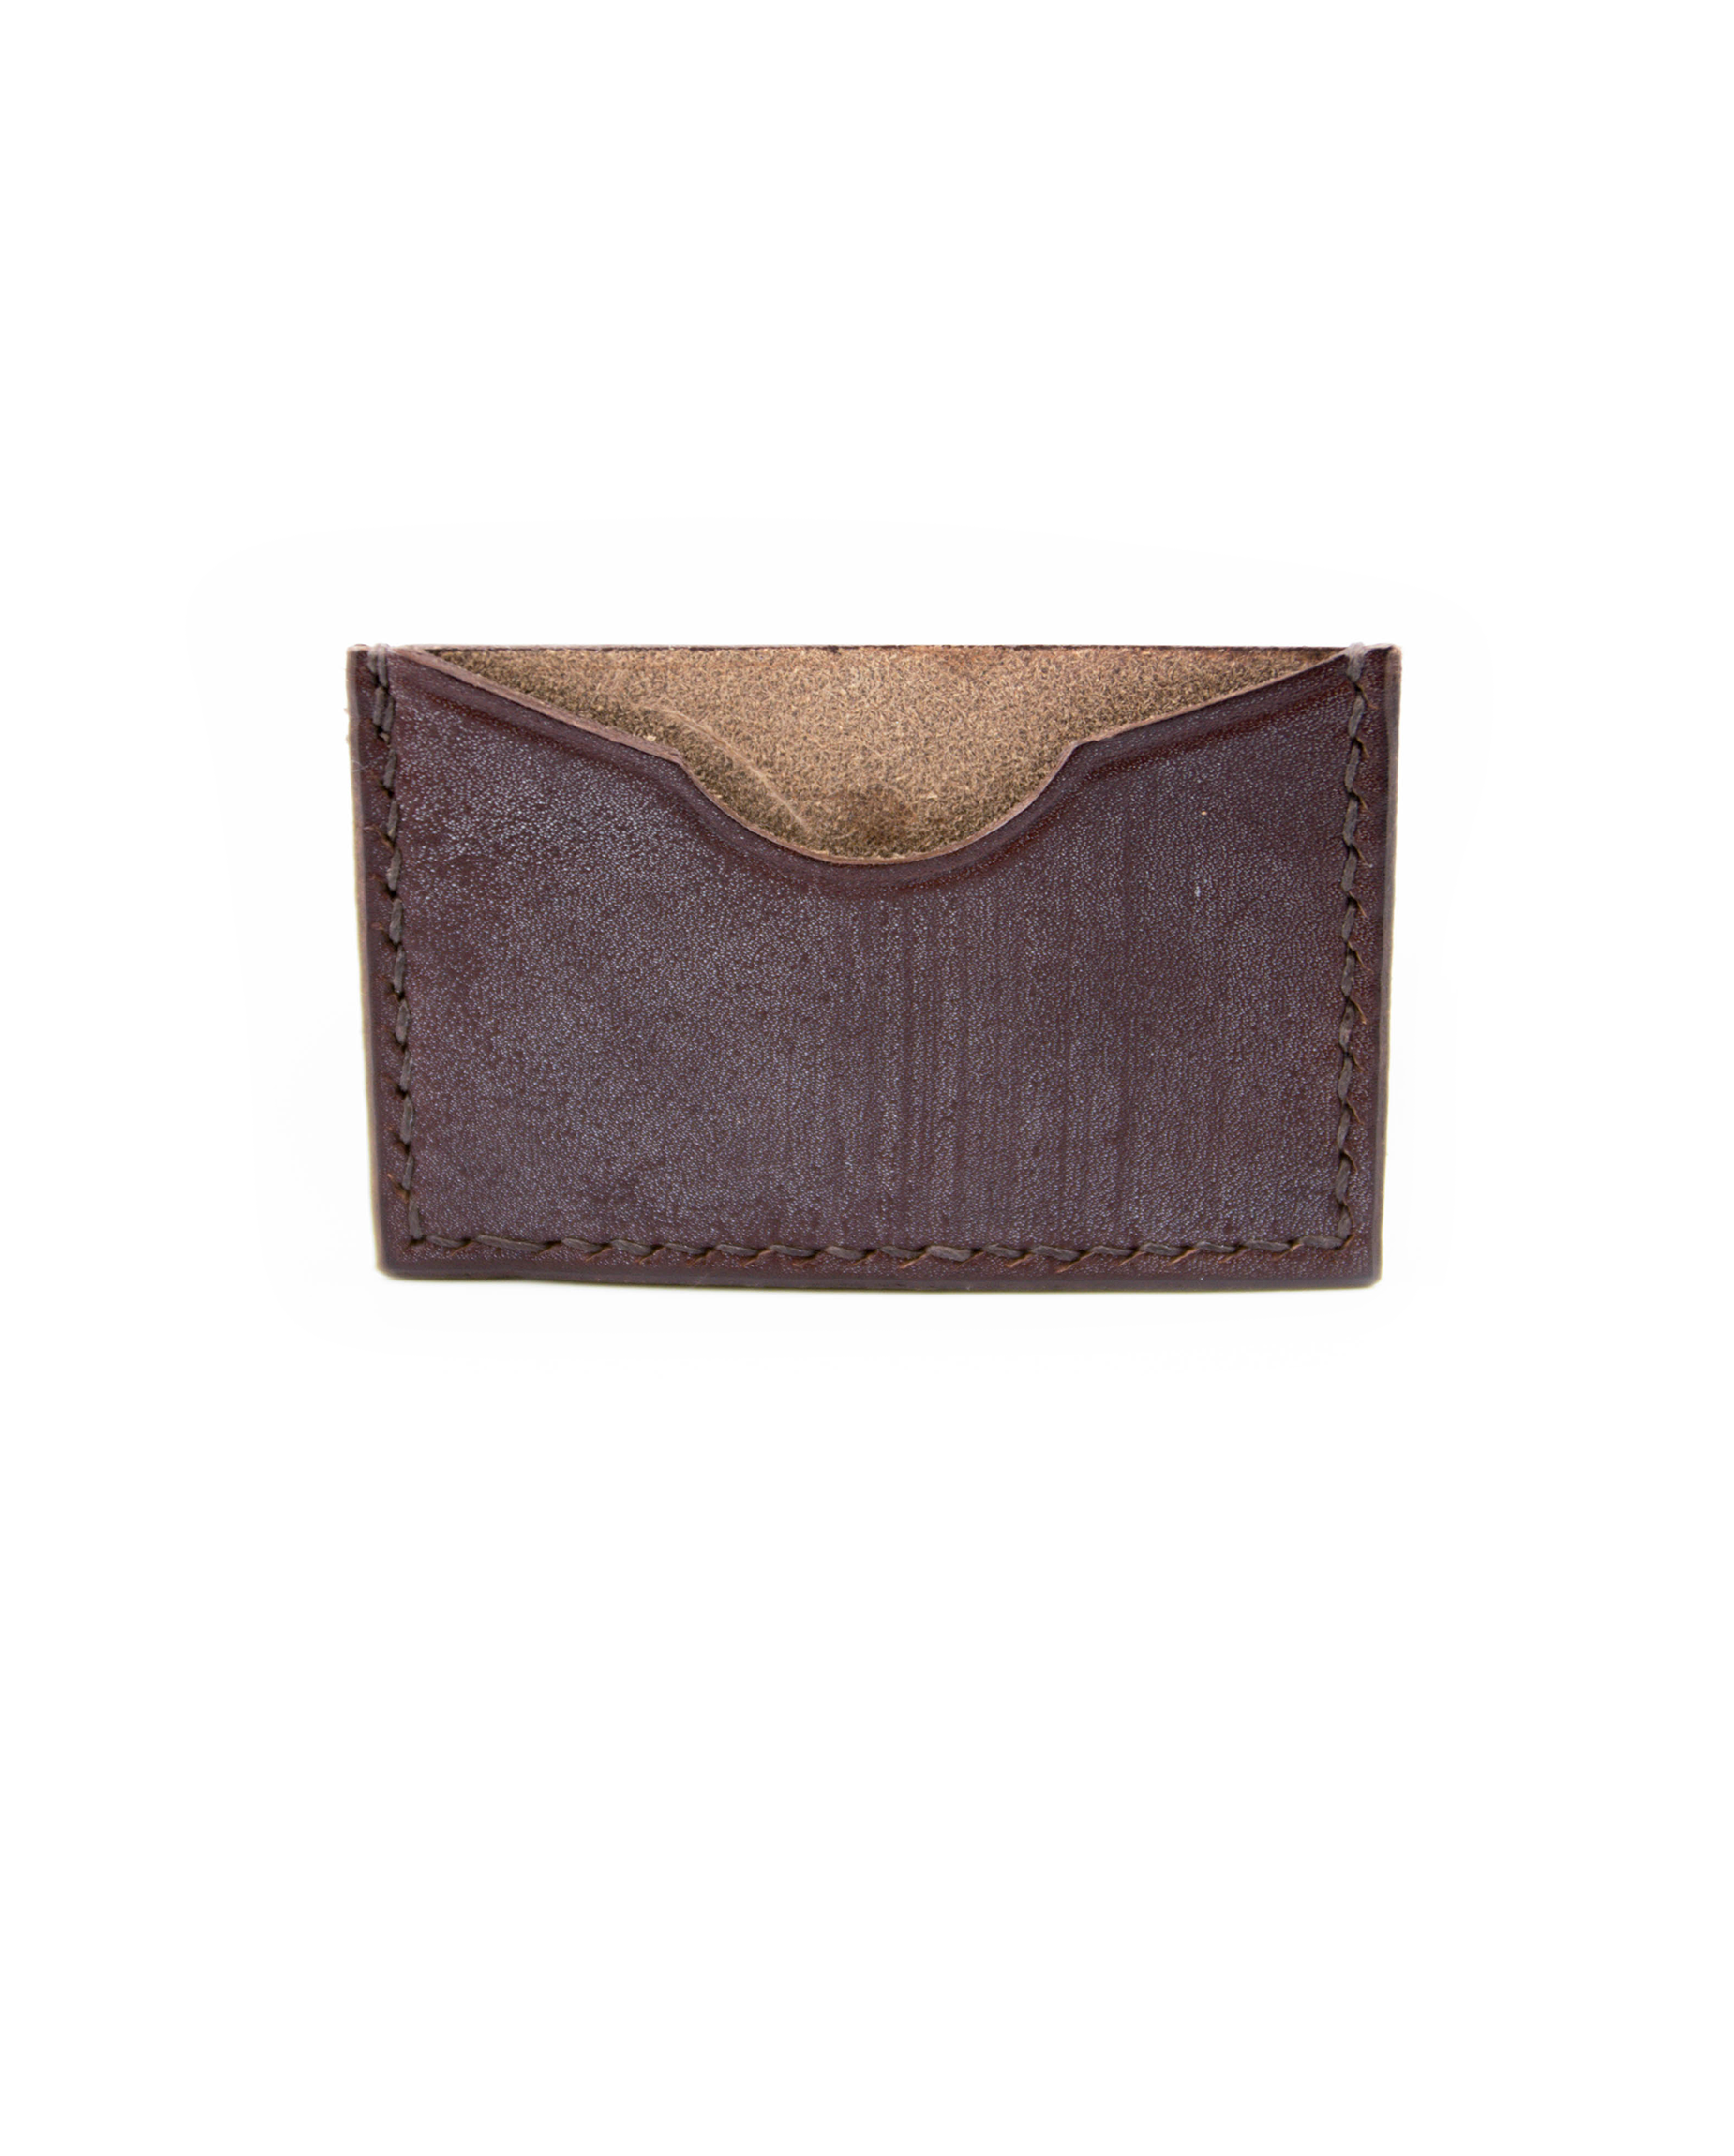 Single Card Wallet - Brown - Debonair